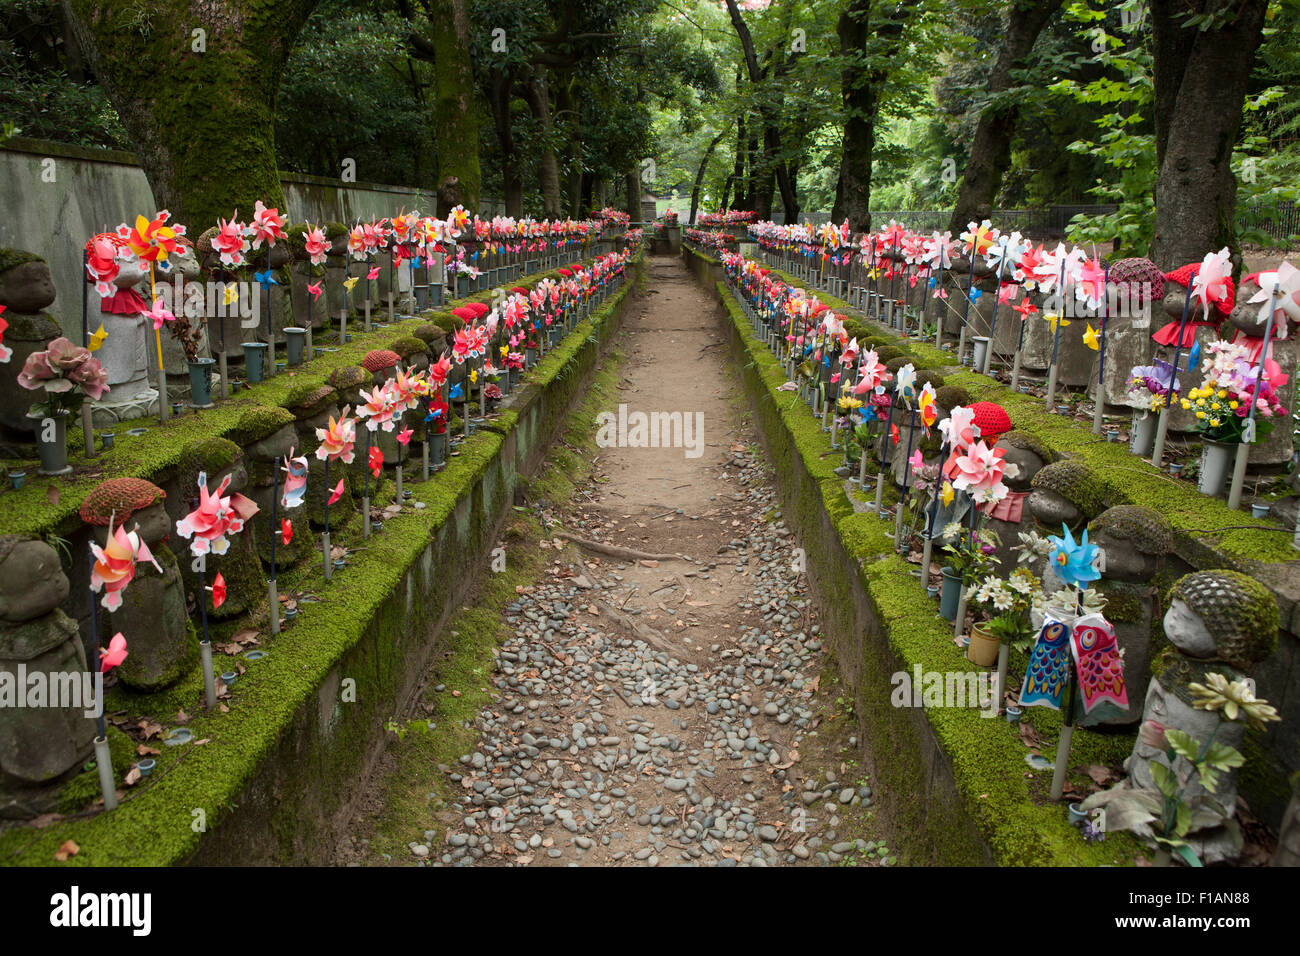 Japan, Tokyo, Jizo statues decorated with bibs, knitted caps, flowers and pinwheels at Zojoji temple - Stock Image